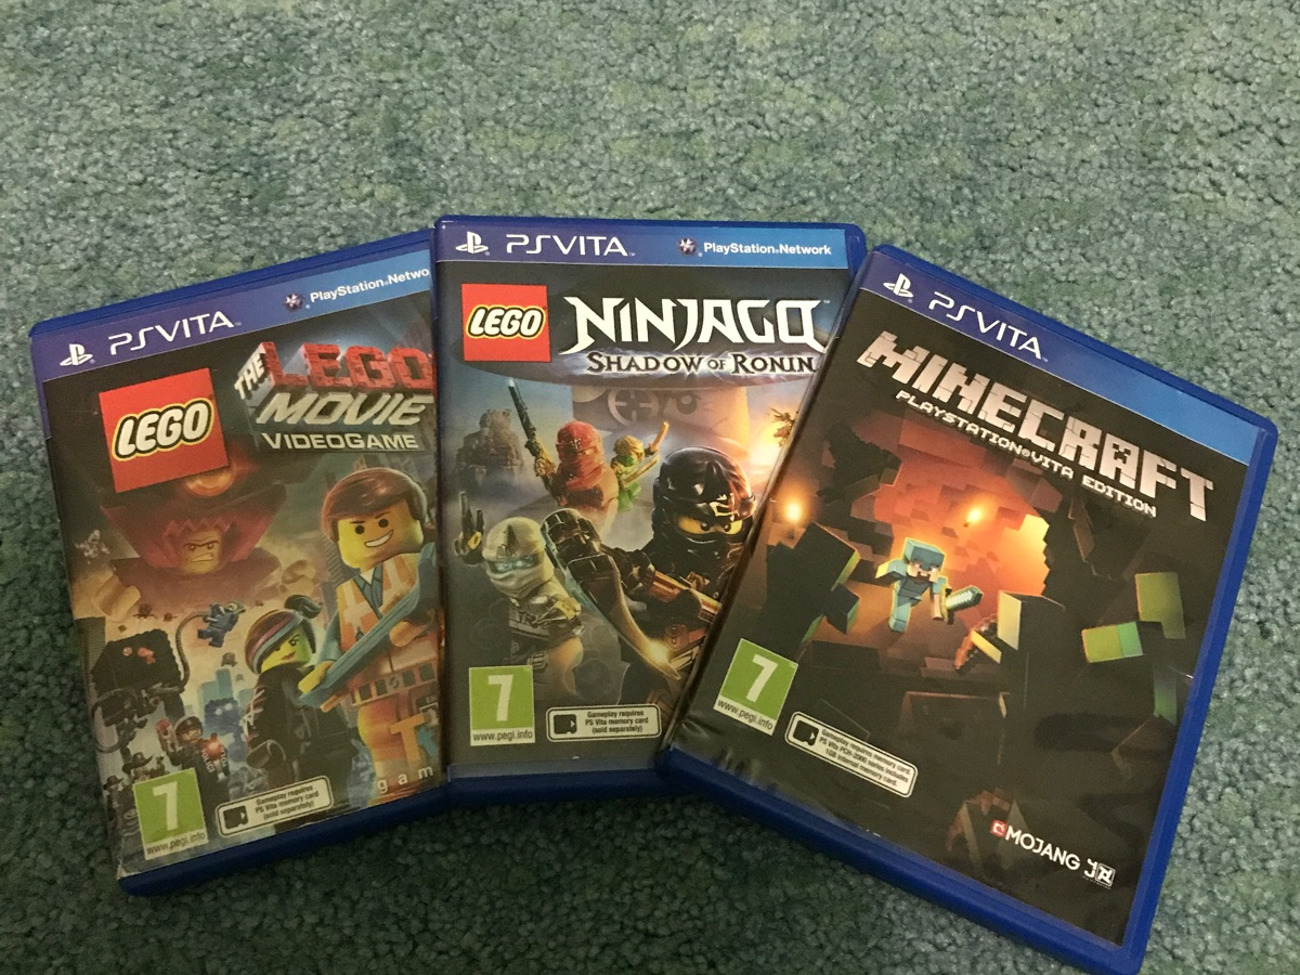 Rent PS Vita Games/LEGO Movie Video Game/LEGO Ninjago etc.. in Cheshunt ( rent for £5.00 / day, £2.57 / week)